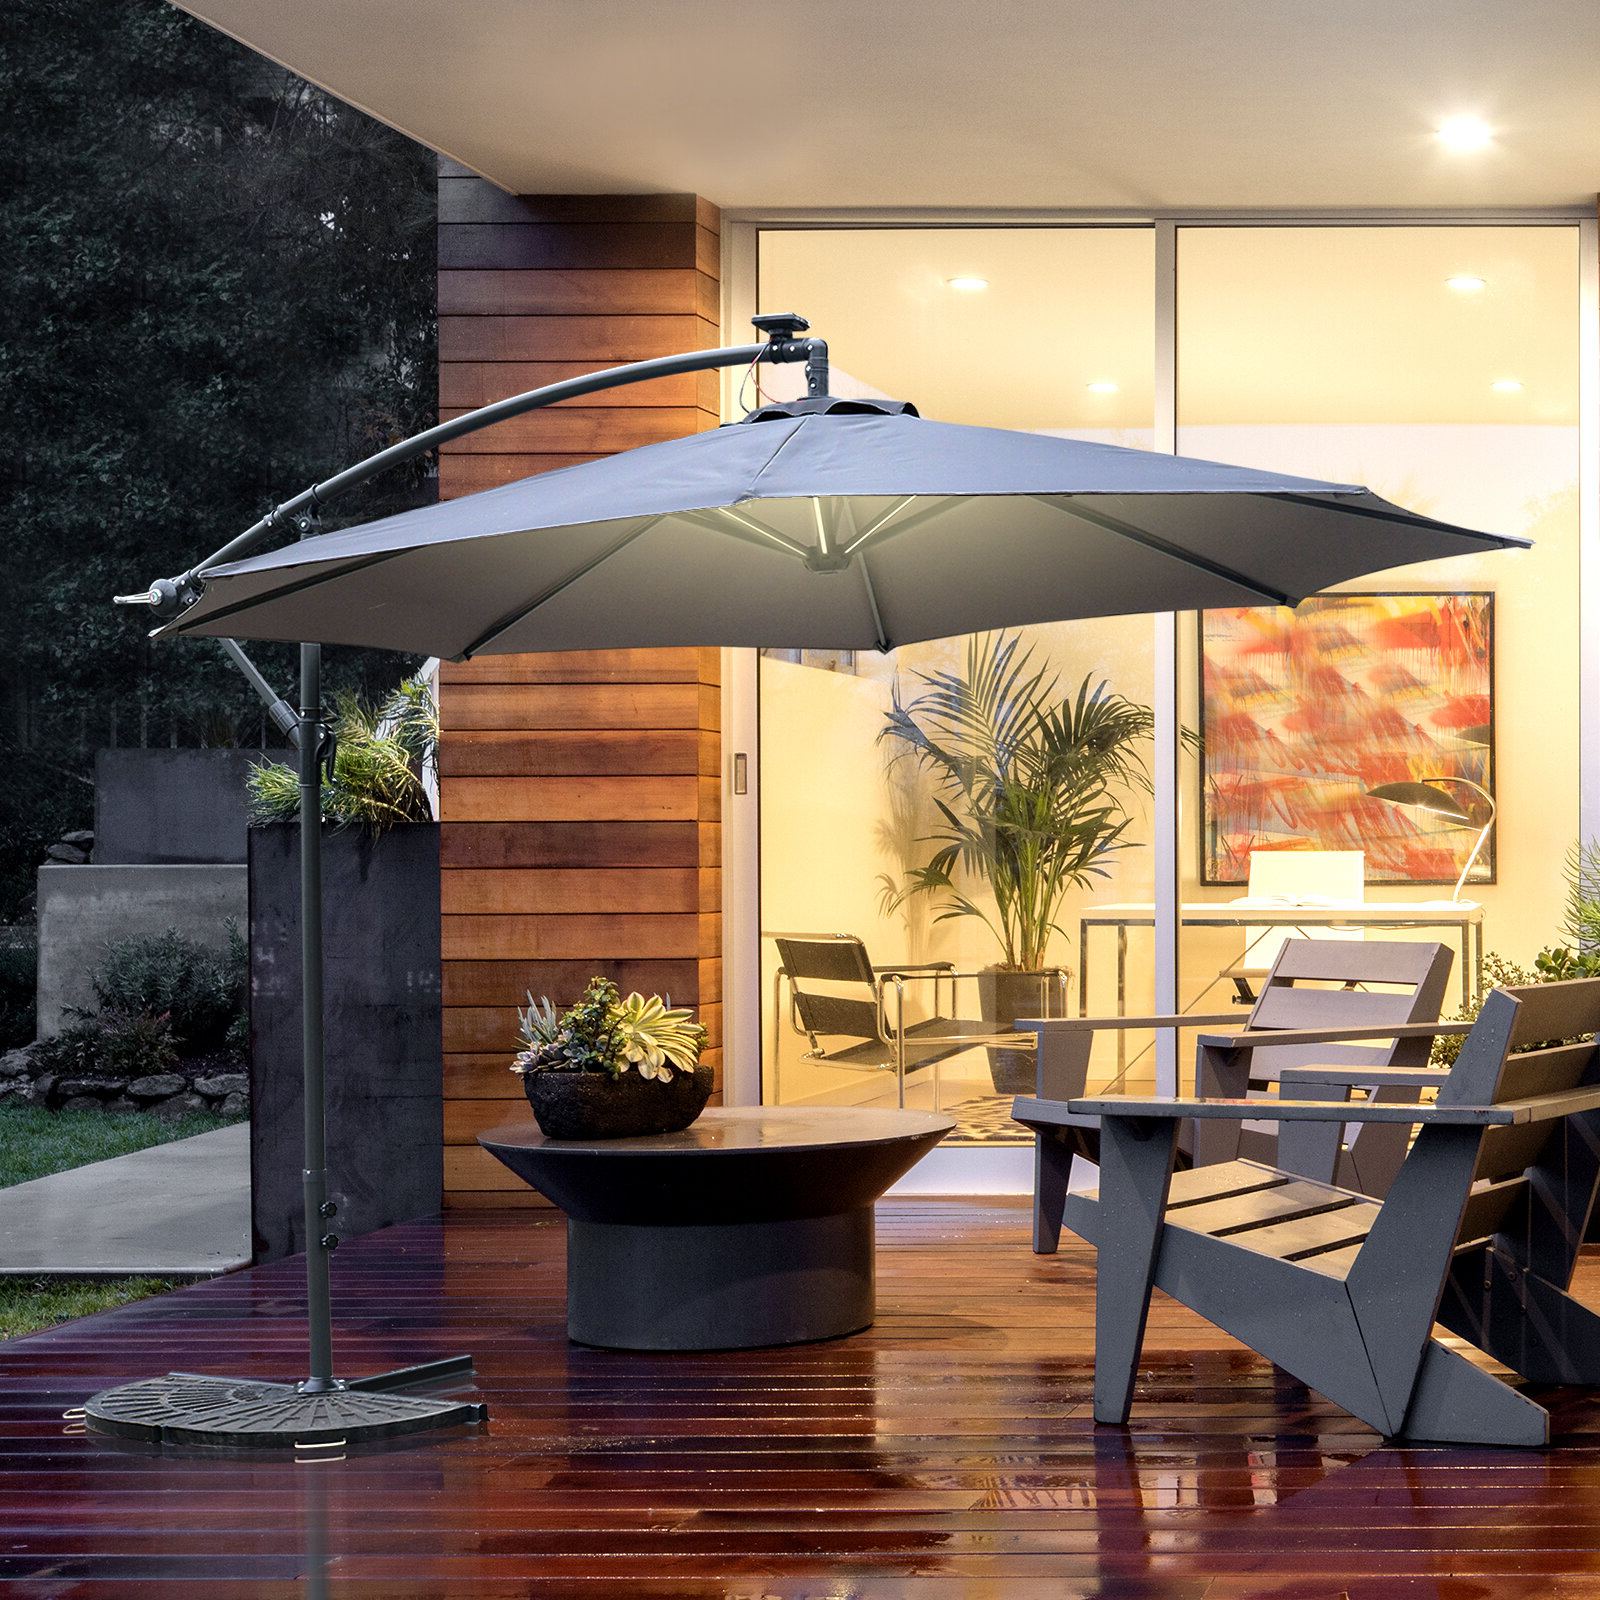 Haverhill Umbrellas For Popular Stamford 10' Cantilever Umbrella (View 14 of 20)